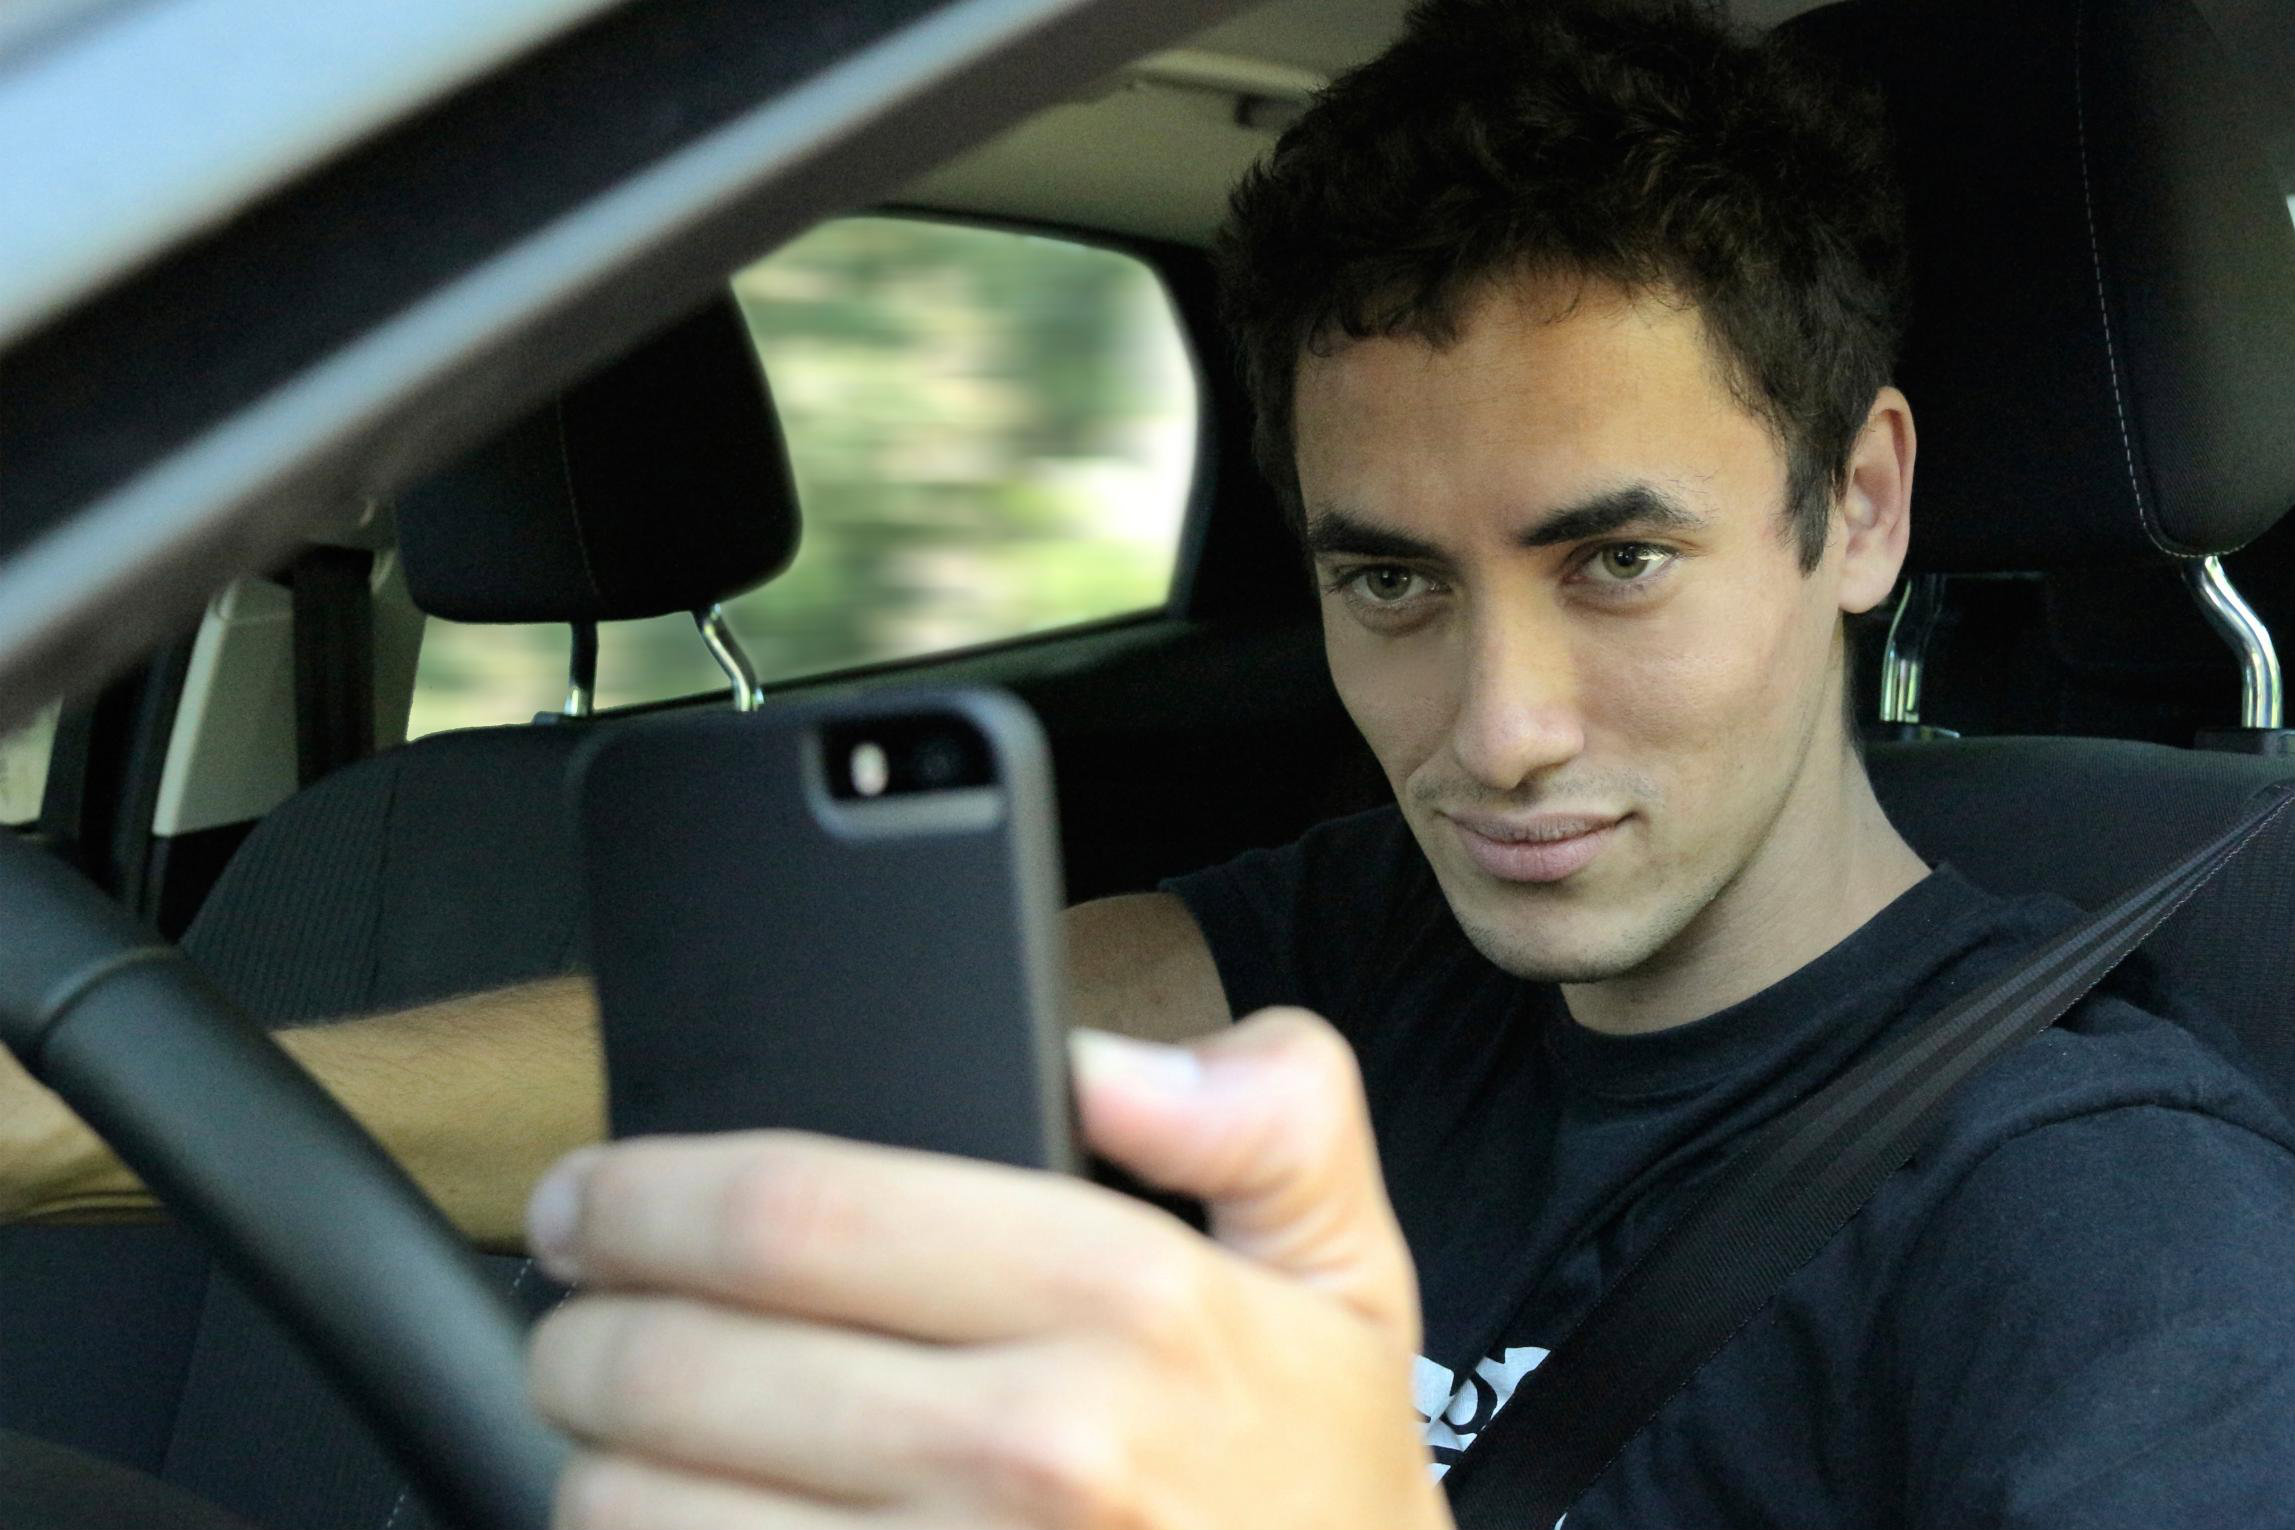 Image result for selfie while driving